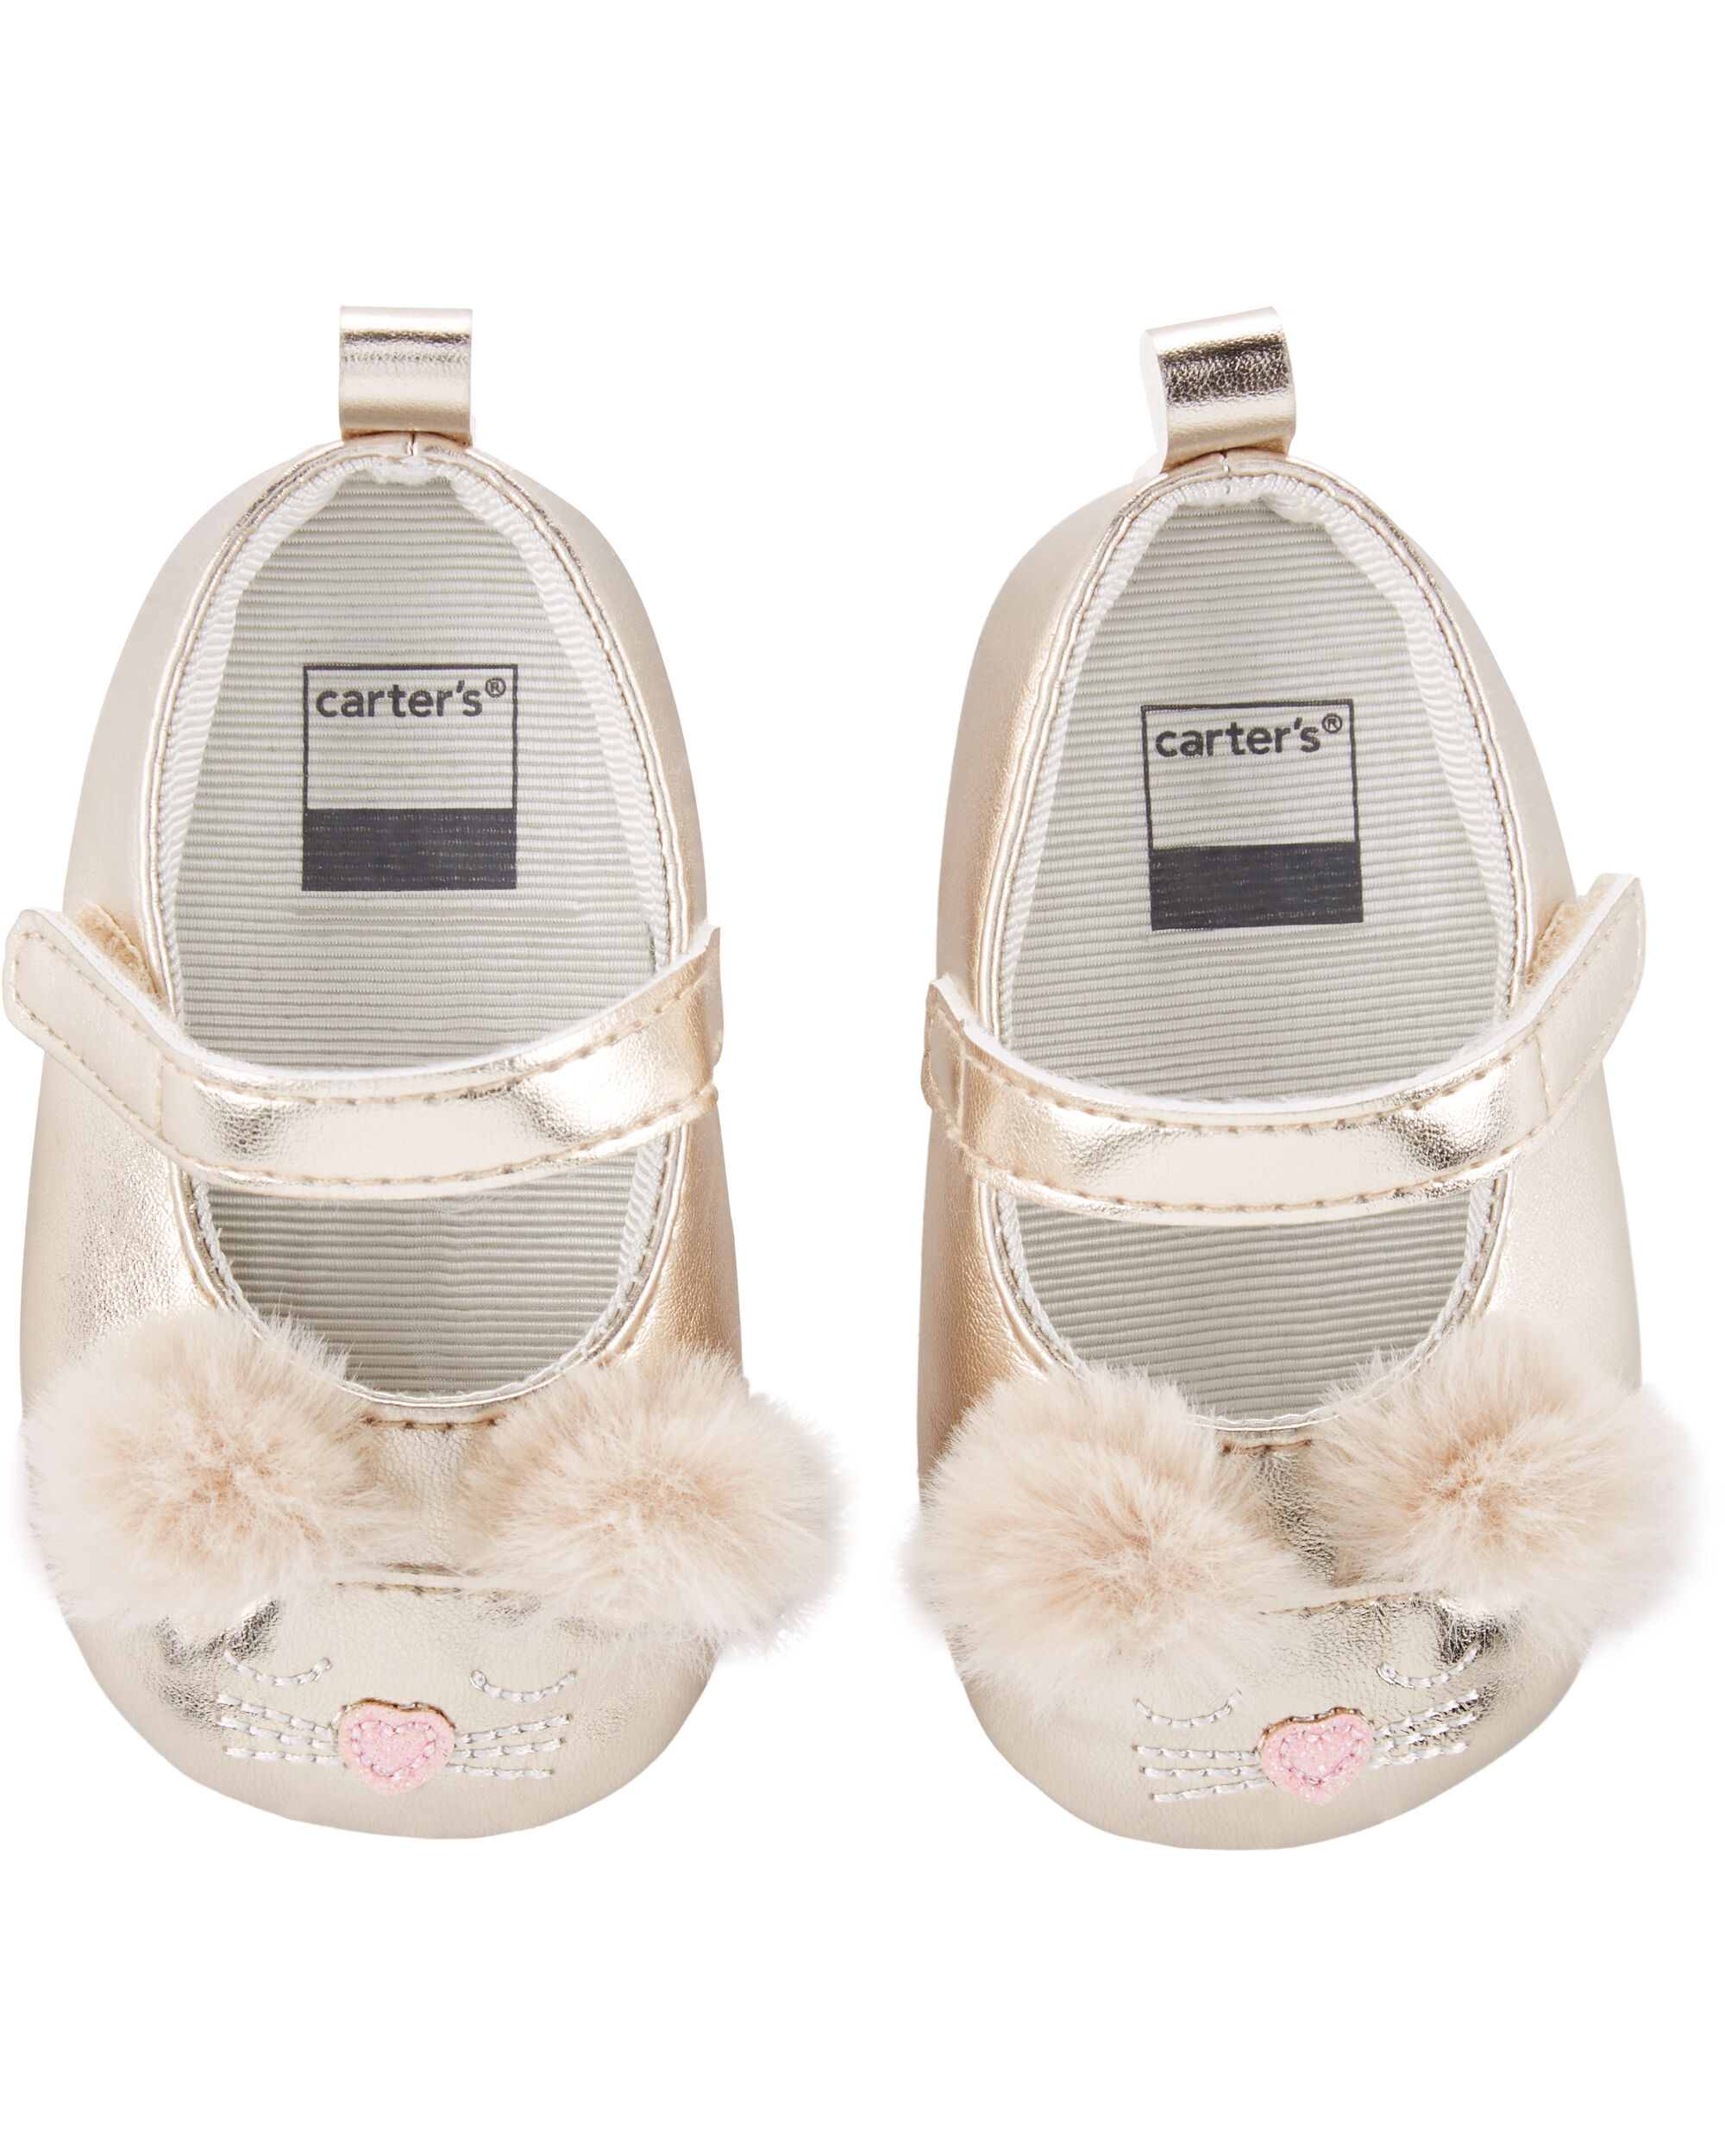 Carter's Mary Jane Baby Shoes | carters.com